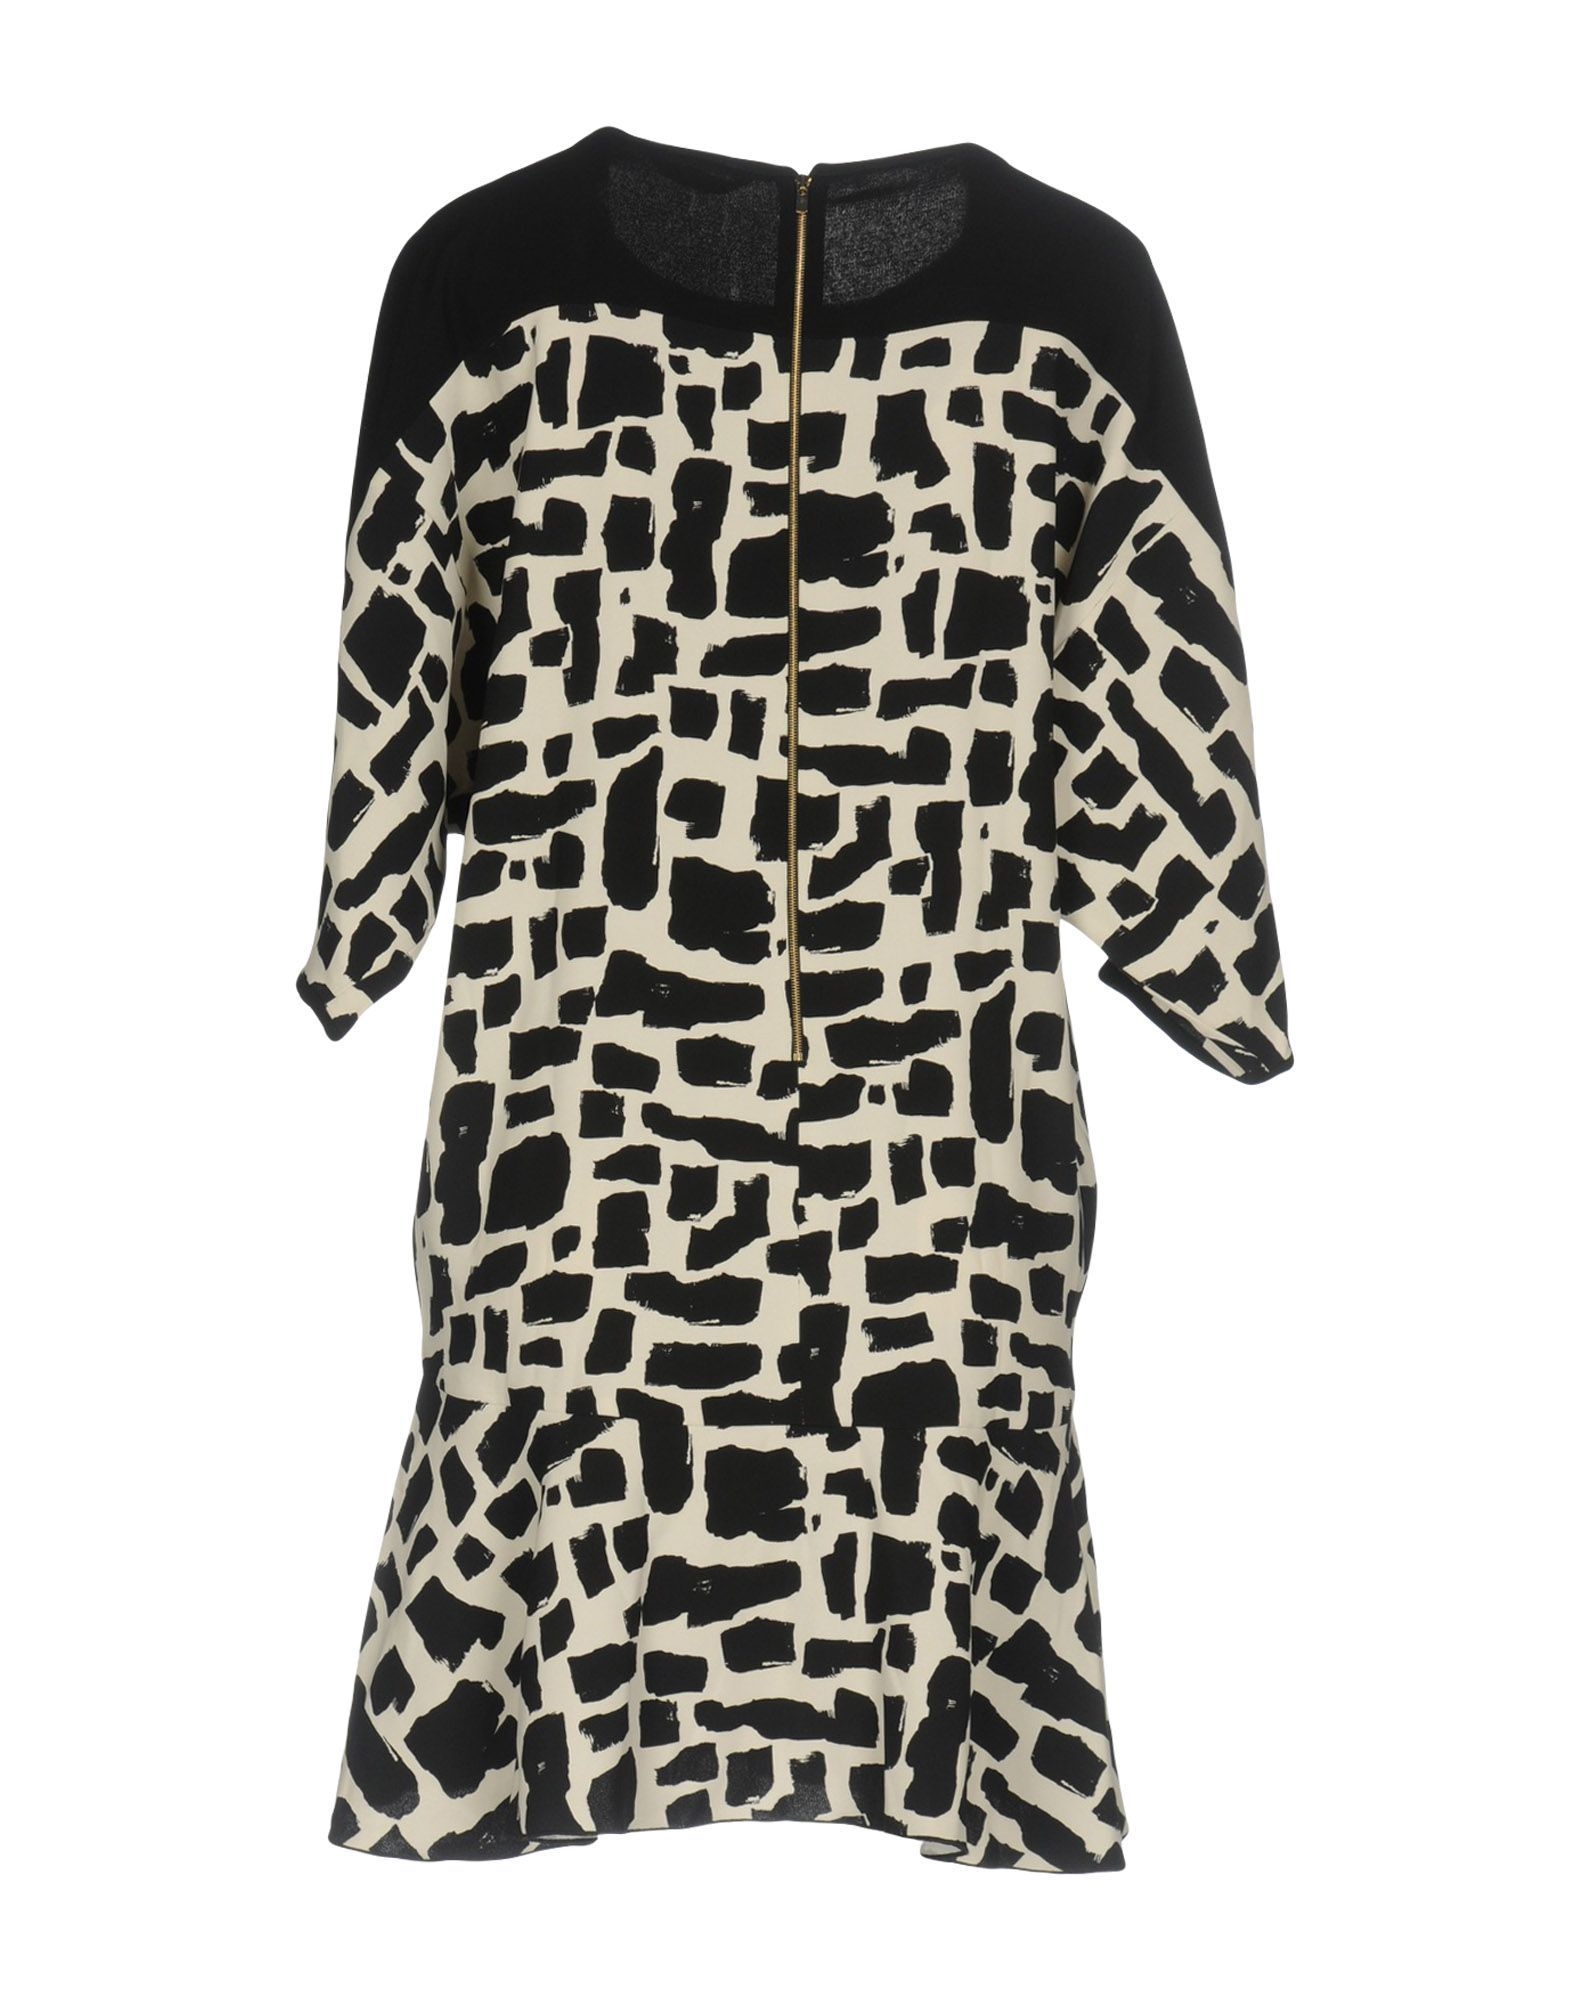 DRESSES Tara Jarmon Black Woman Polyester